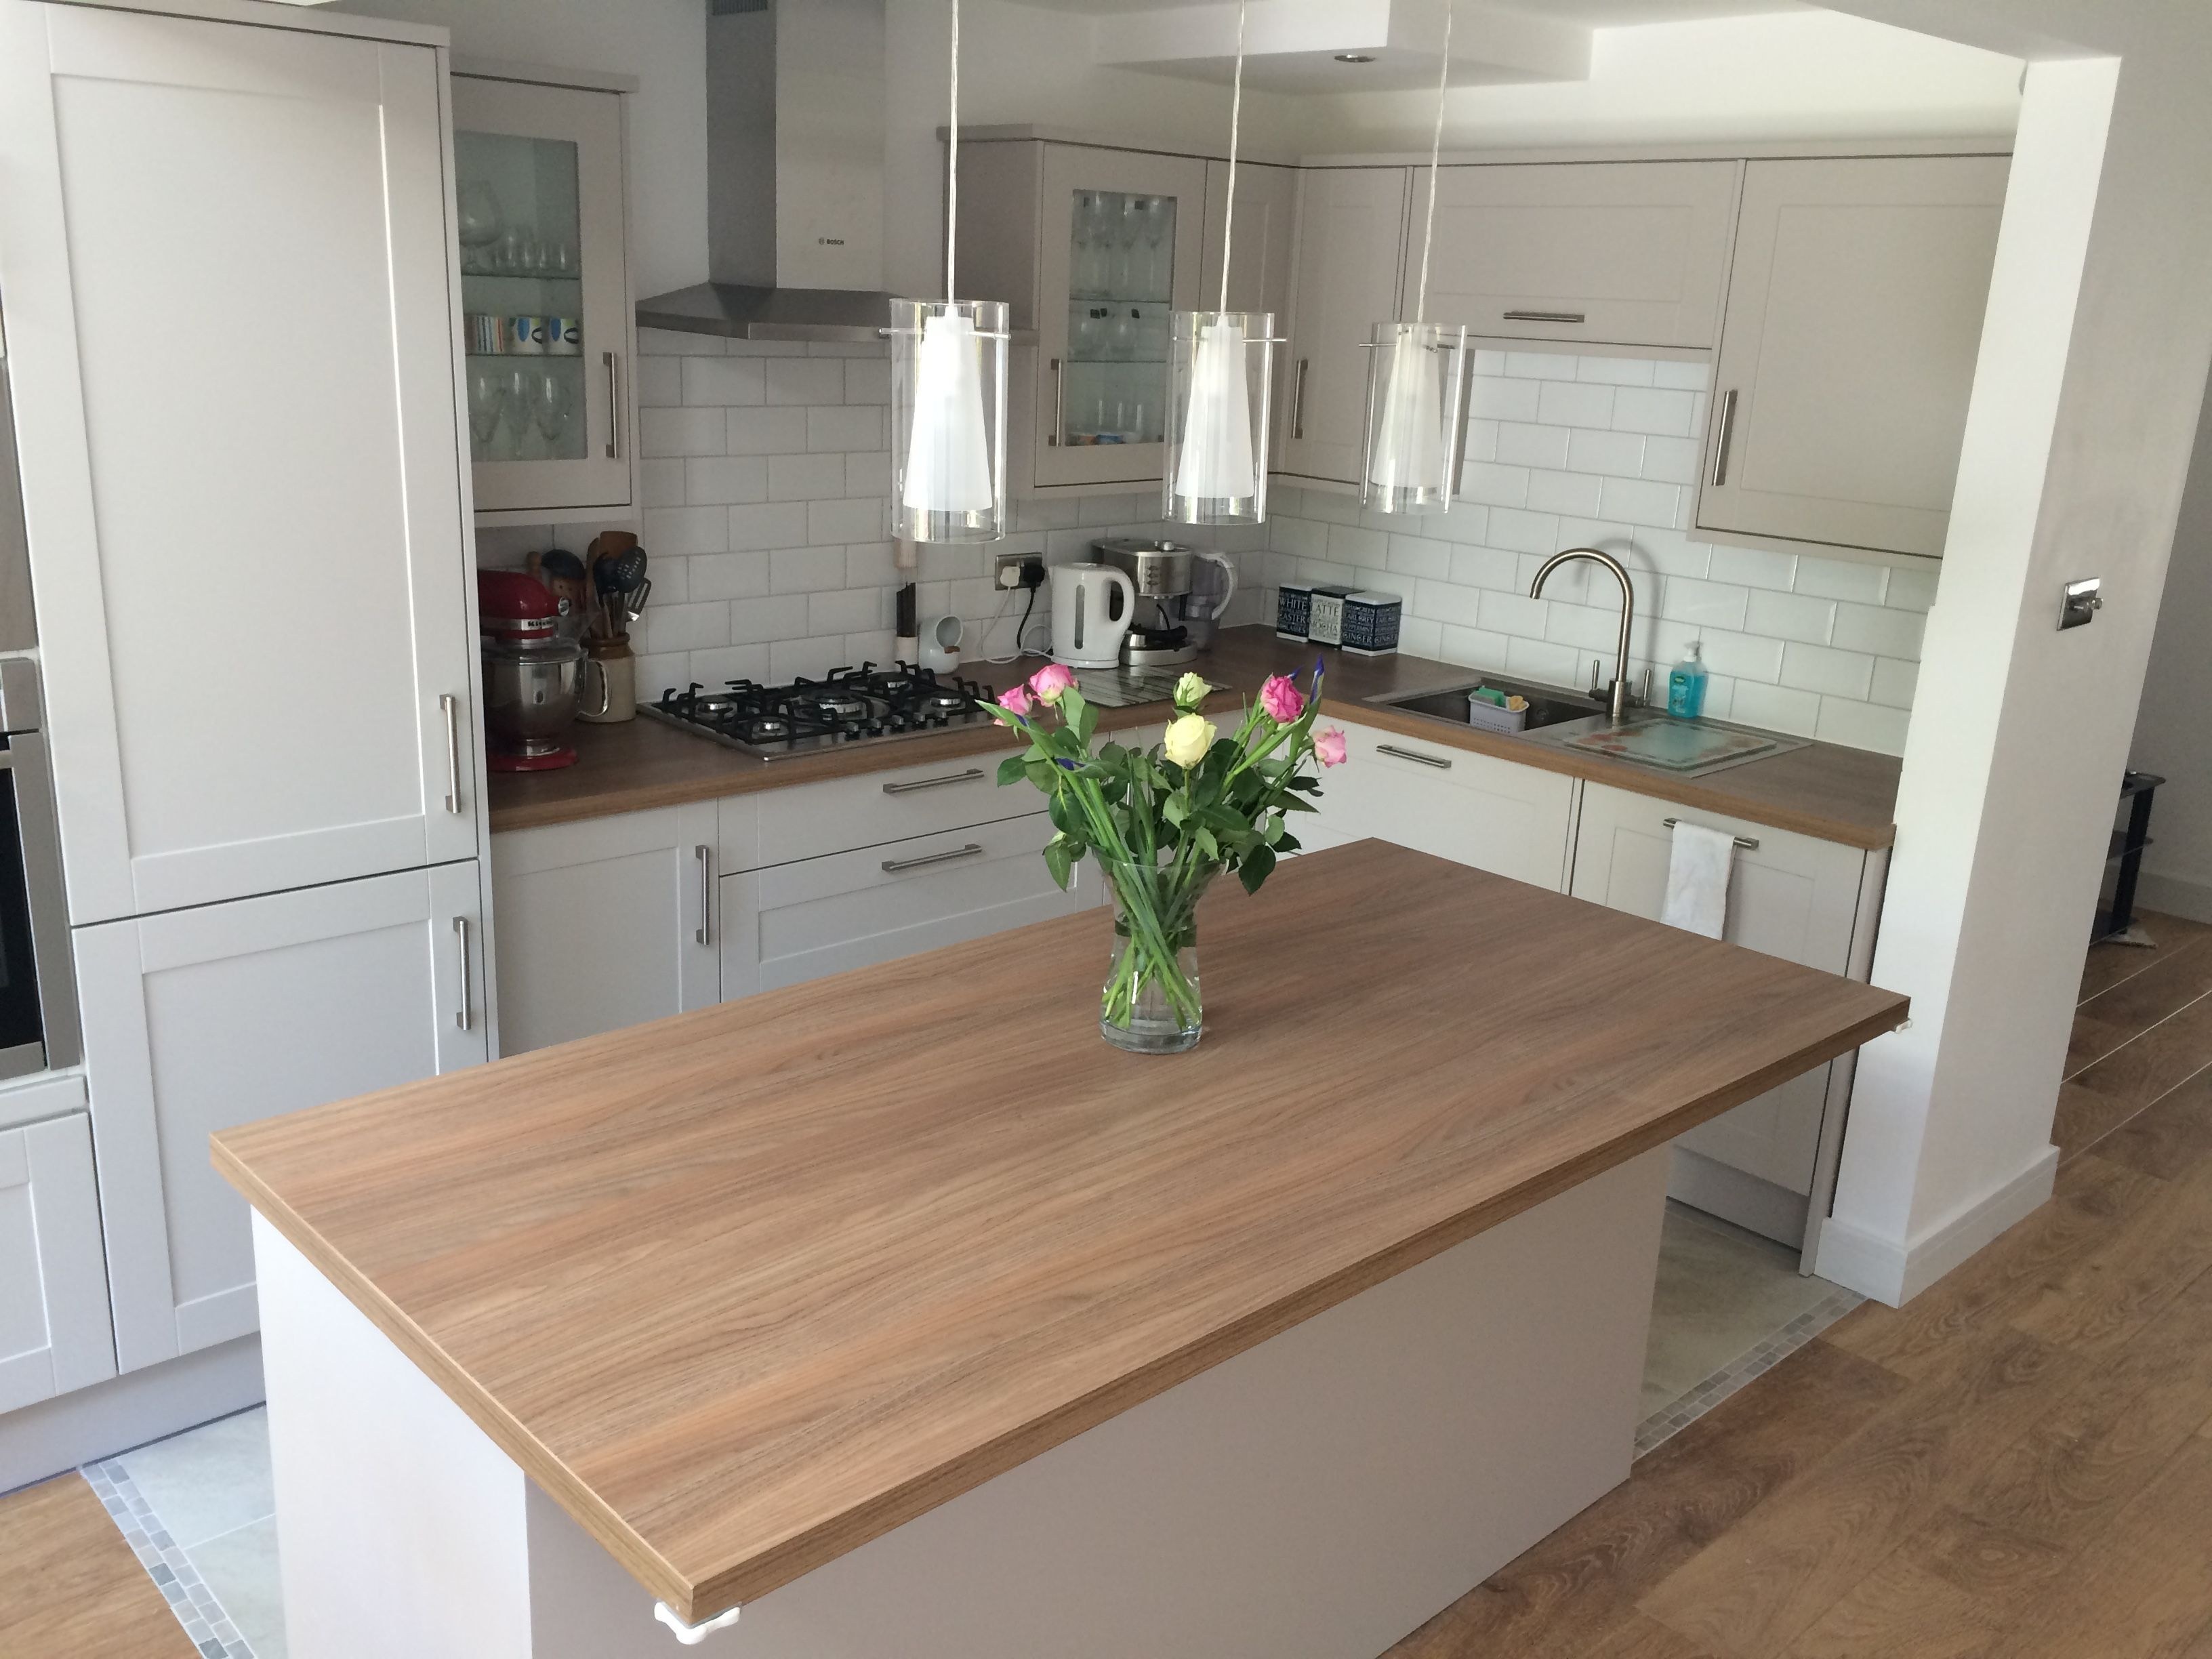 Howdens burford stone kitchen with island and pendant lights